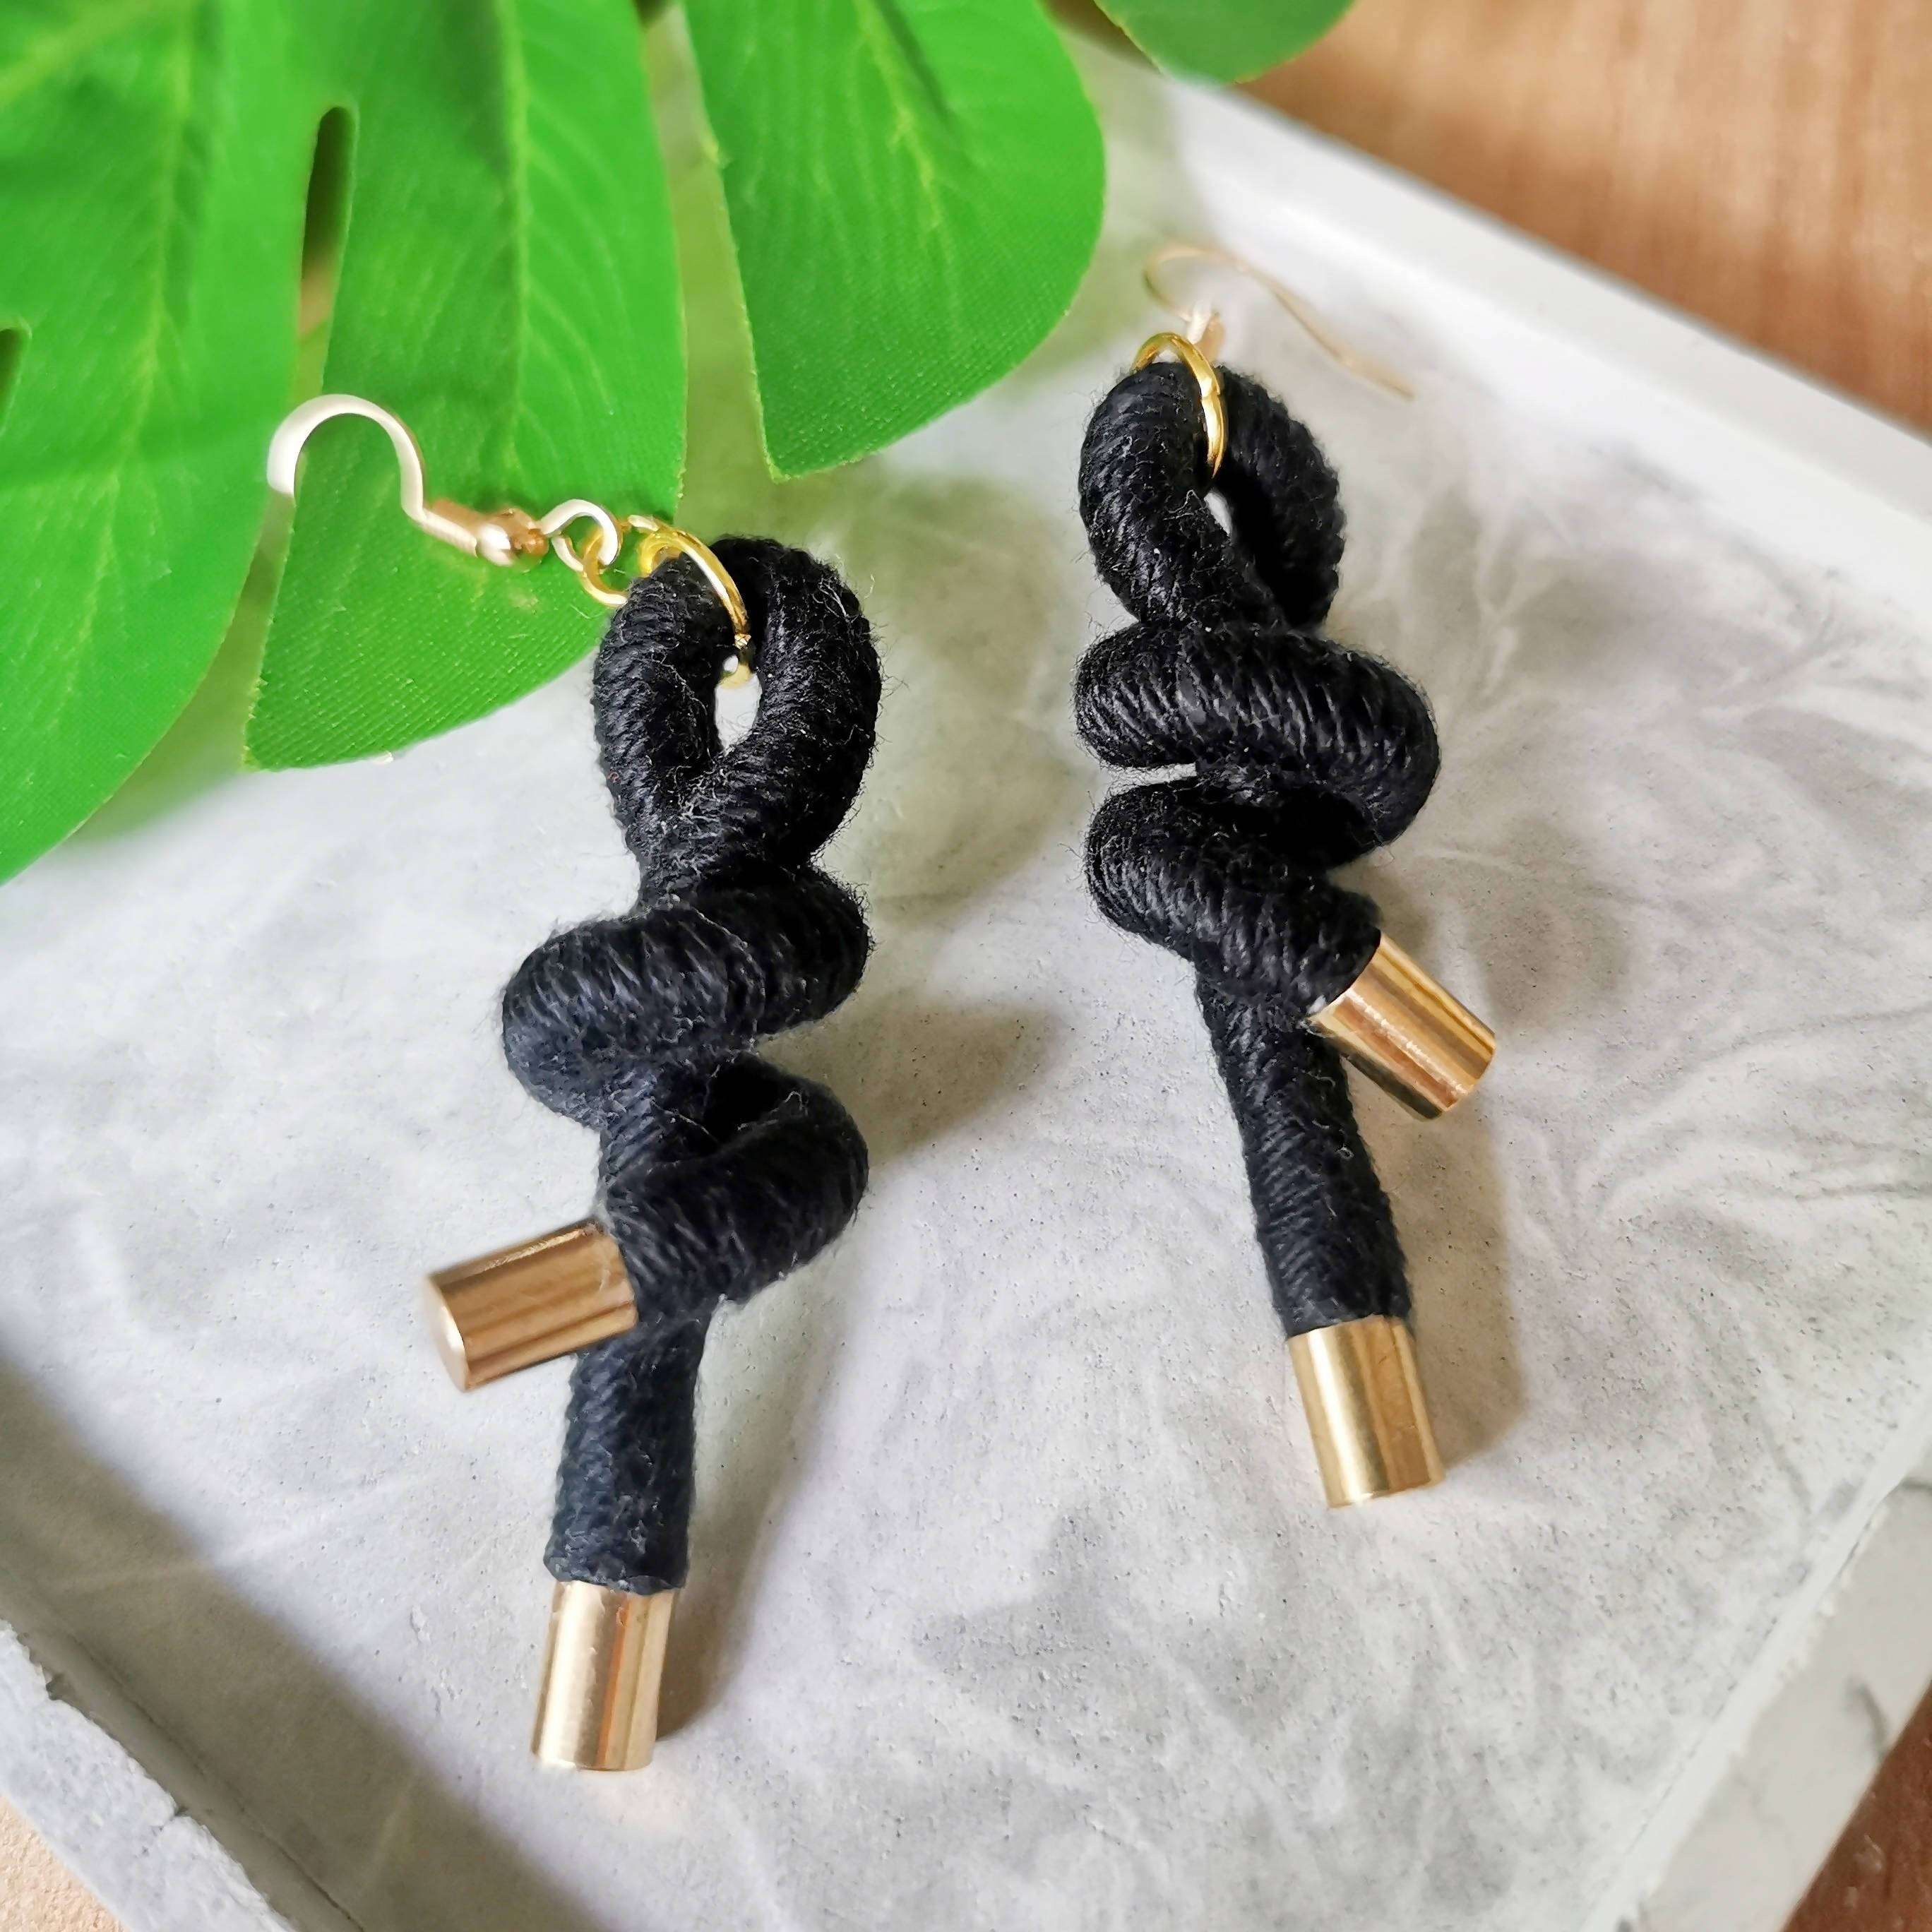 The Thinker Rope Earrings - Black - Earrings - Playtime Rebs Studio - Naiise